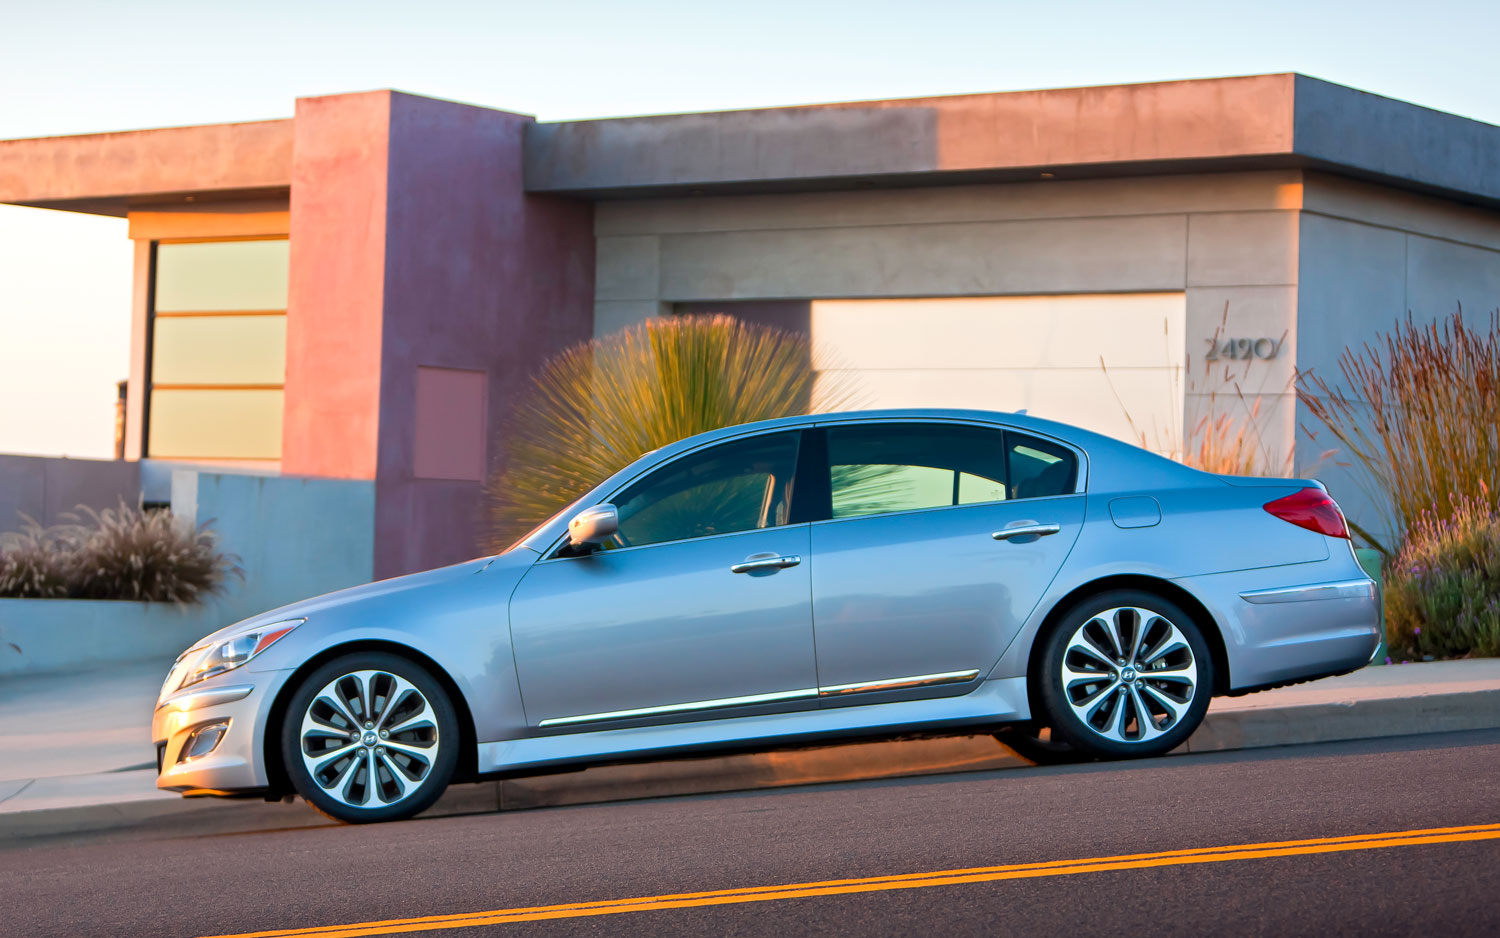 2012 hyundai genesis prices rise slightly r spec model starts at 47 350. Black Bedroom Furniture Sets. Home Design Ideas